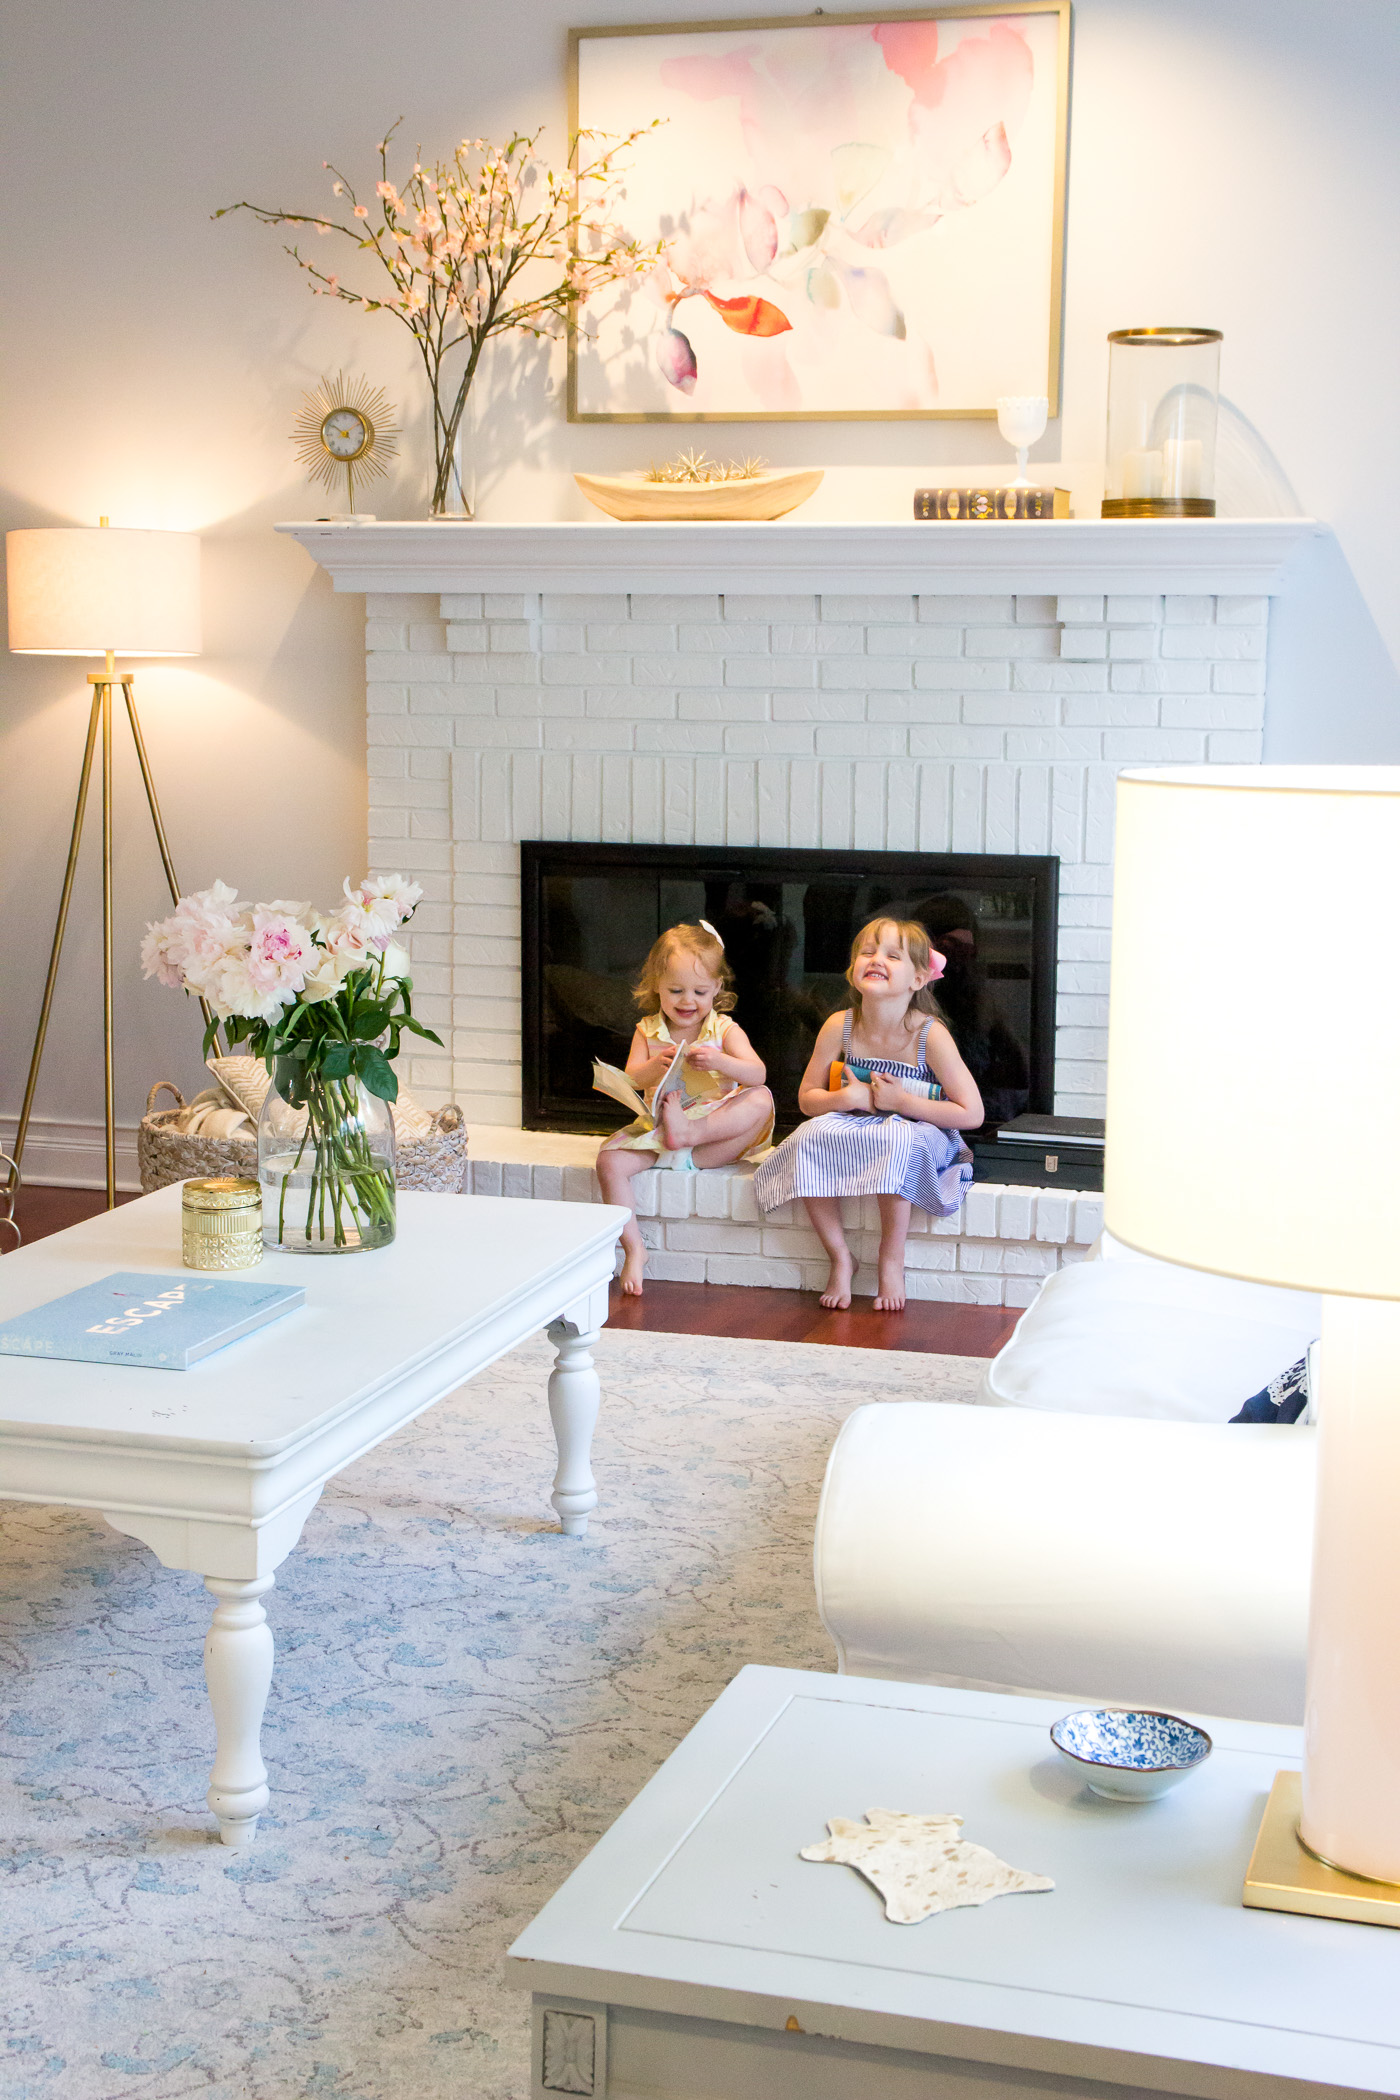 You can see more photos of our living room here during the day in this post and without that stylish changing table next to the fireplace that i tried to